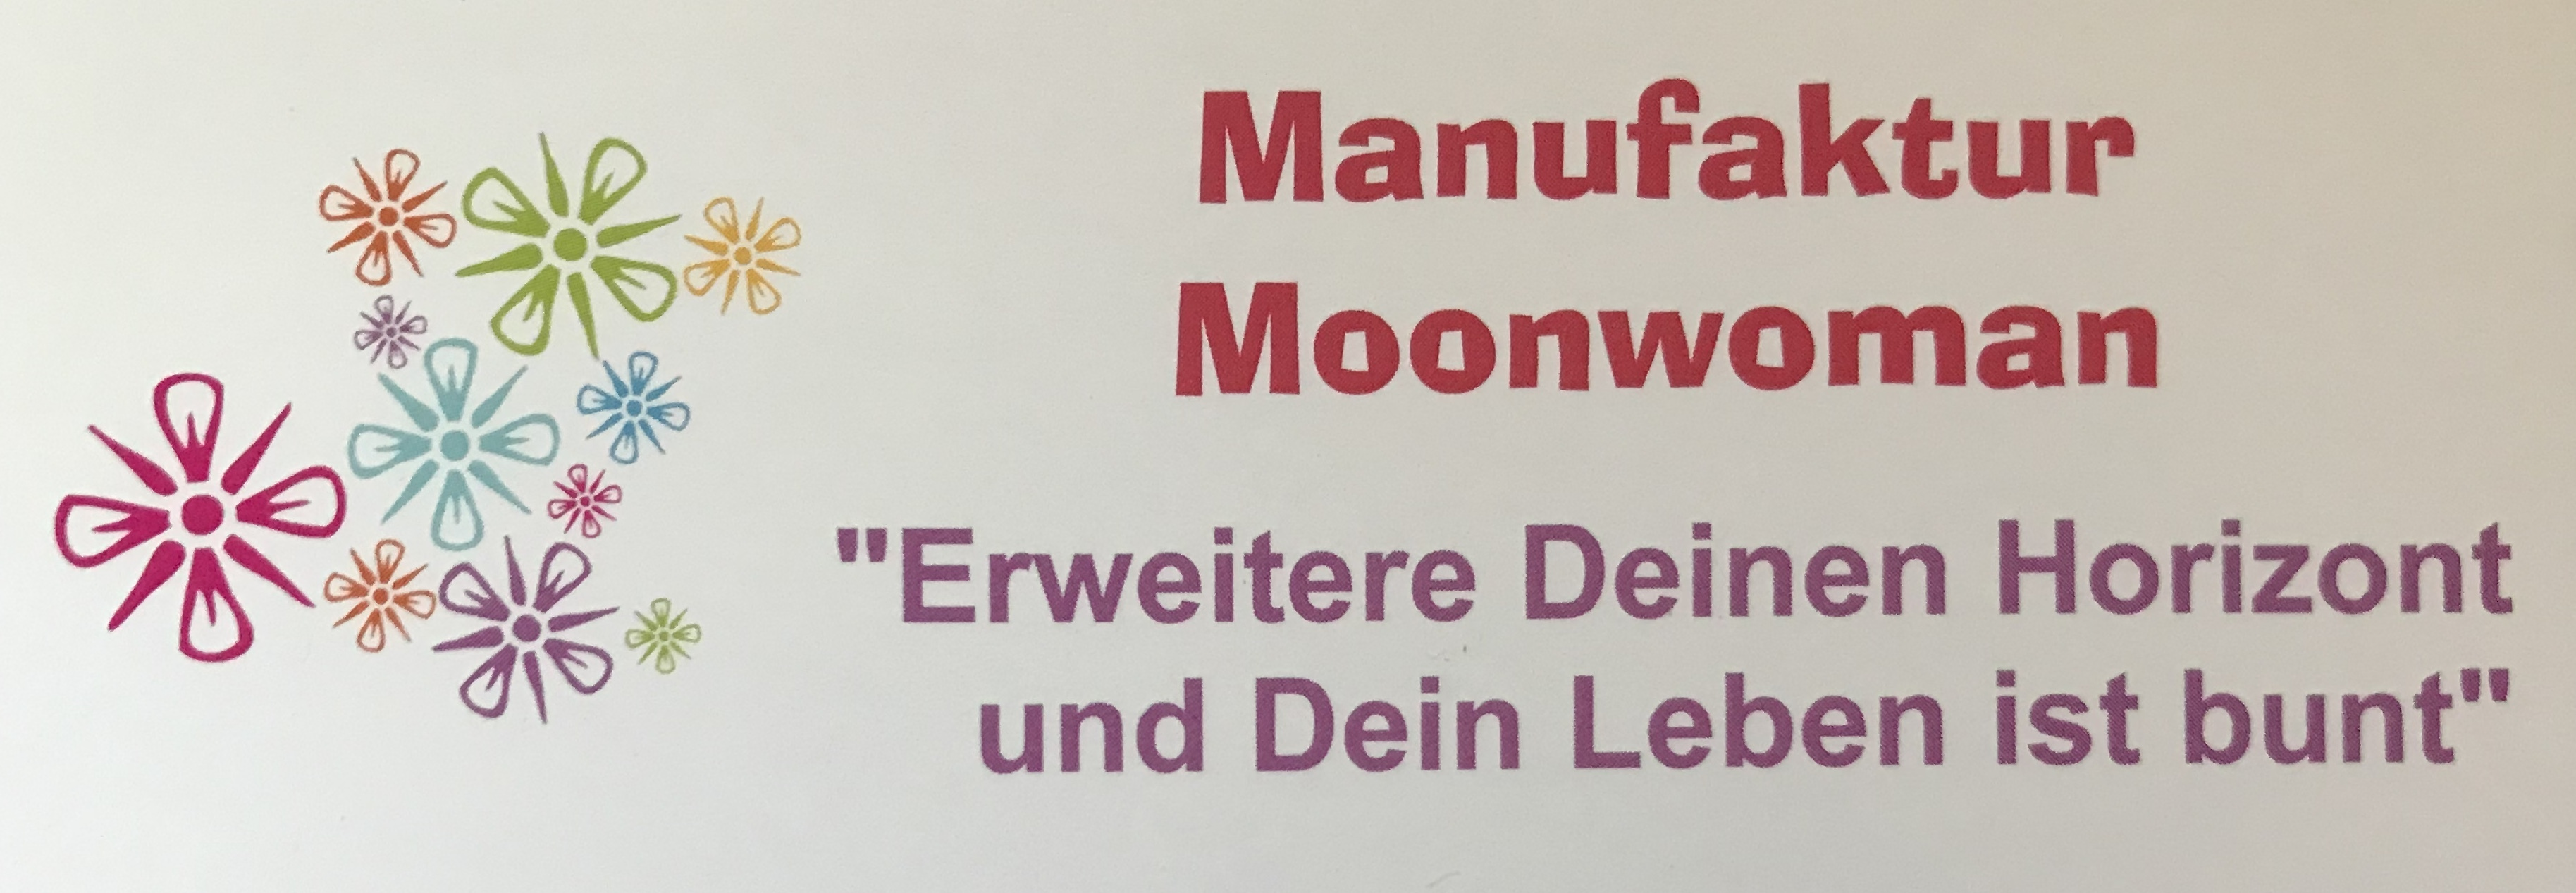 Manufaktur Moonwoman